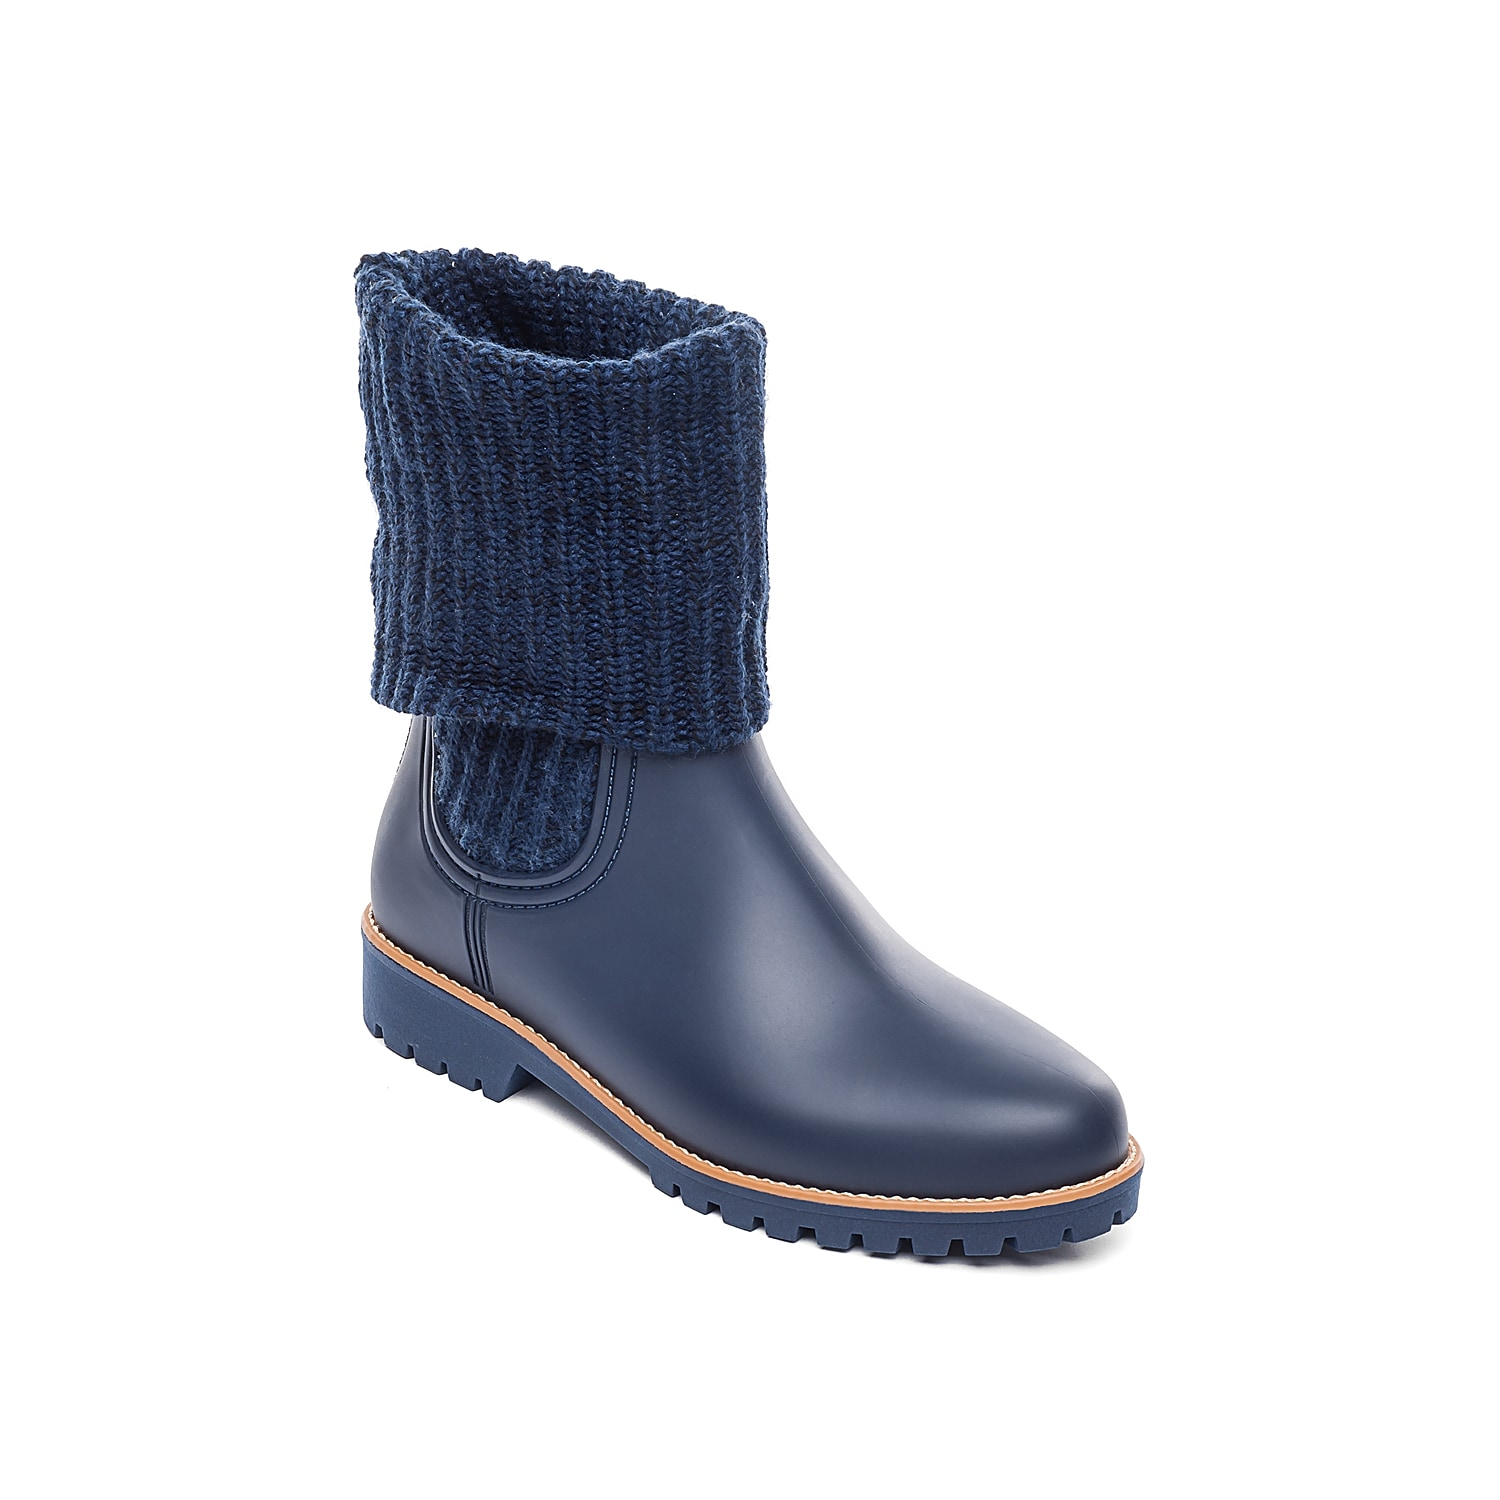 Protect your foot and look good while doing it in the Zurich rain bootie from Bernardo. Showcasing a waterproof shell, it features rubber upper with side knit panels and foldover cuff and foam padded footbed that offers all day support.Click here for Boot Measuring Guide.